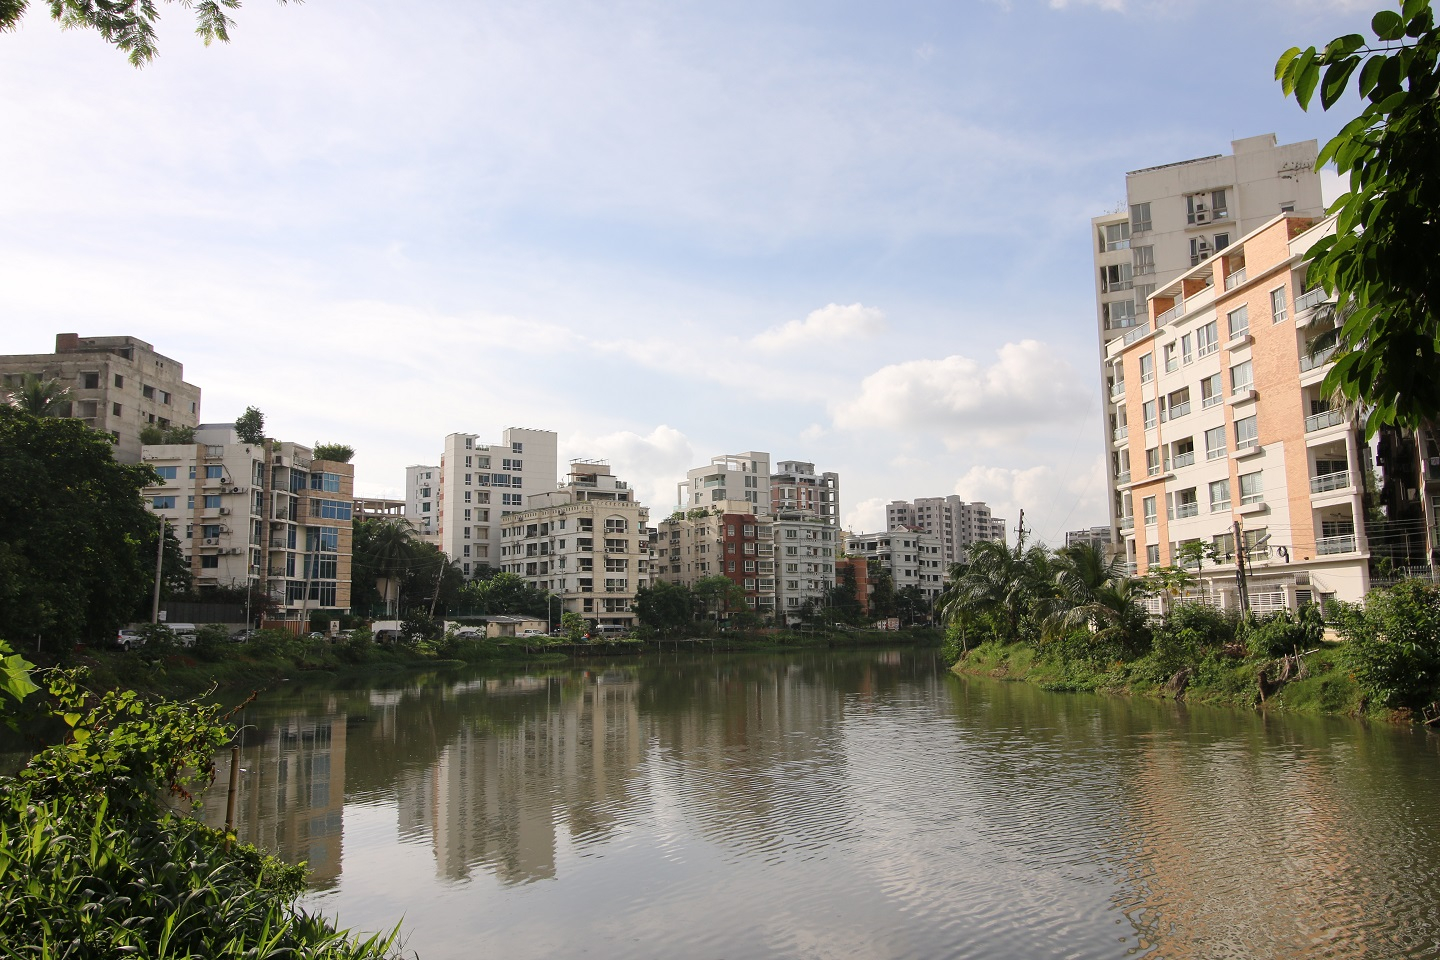 Try finding out a nice place in Dhaka that has a more picturesque view than Banani